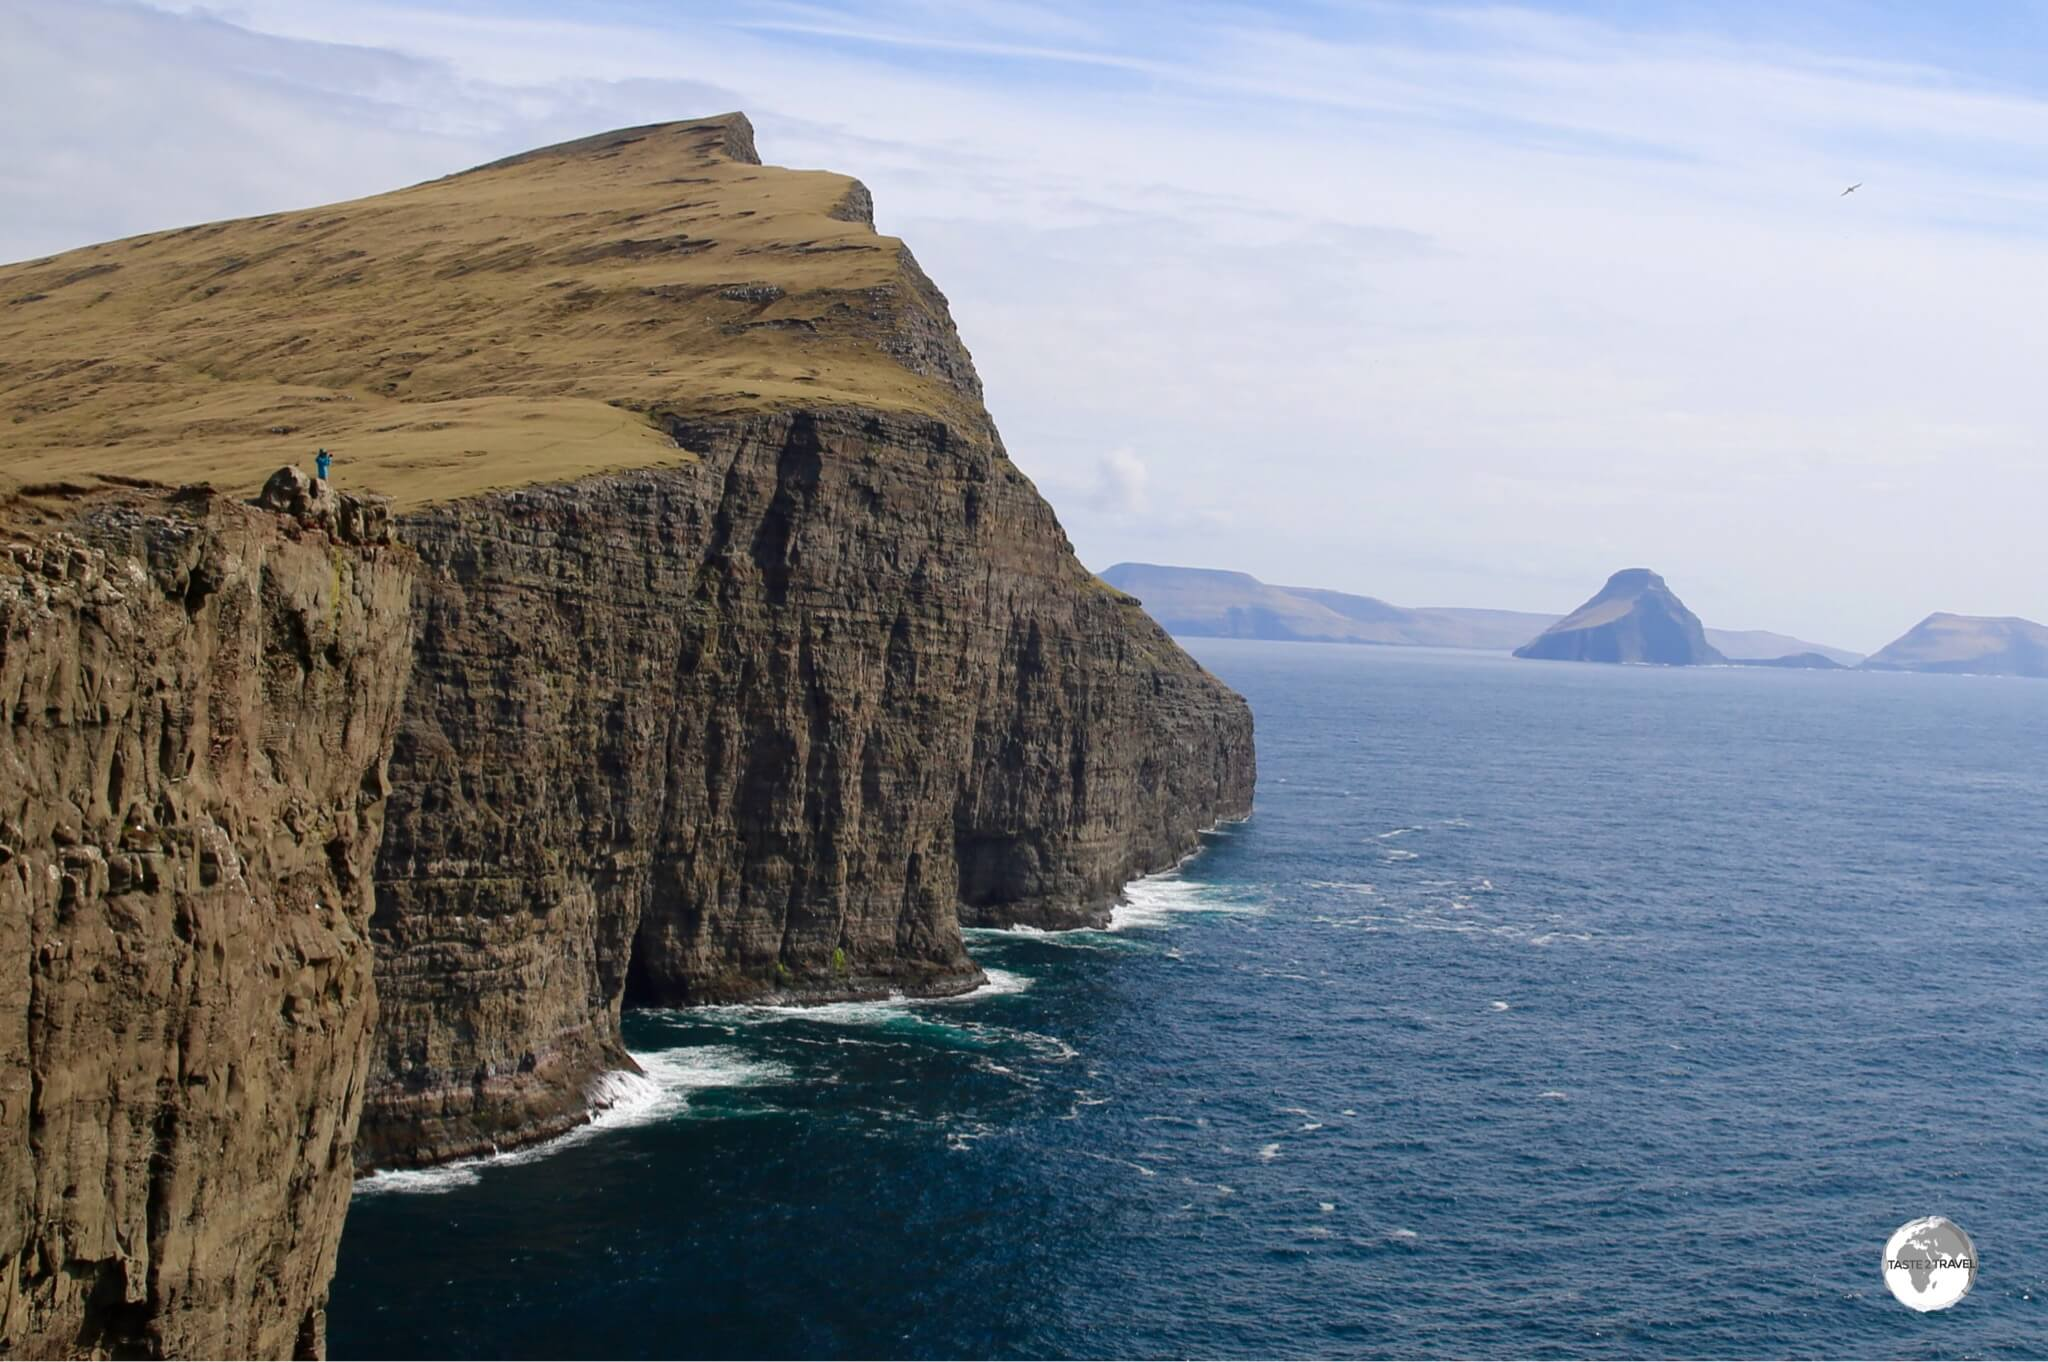 A lone hiker provides a sense of scale to the soaring cliffs on Vagur island.